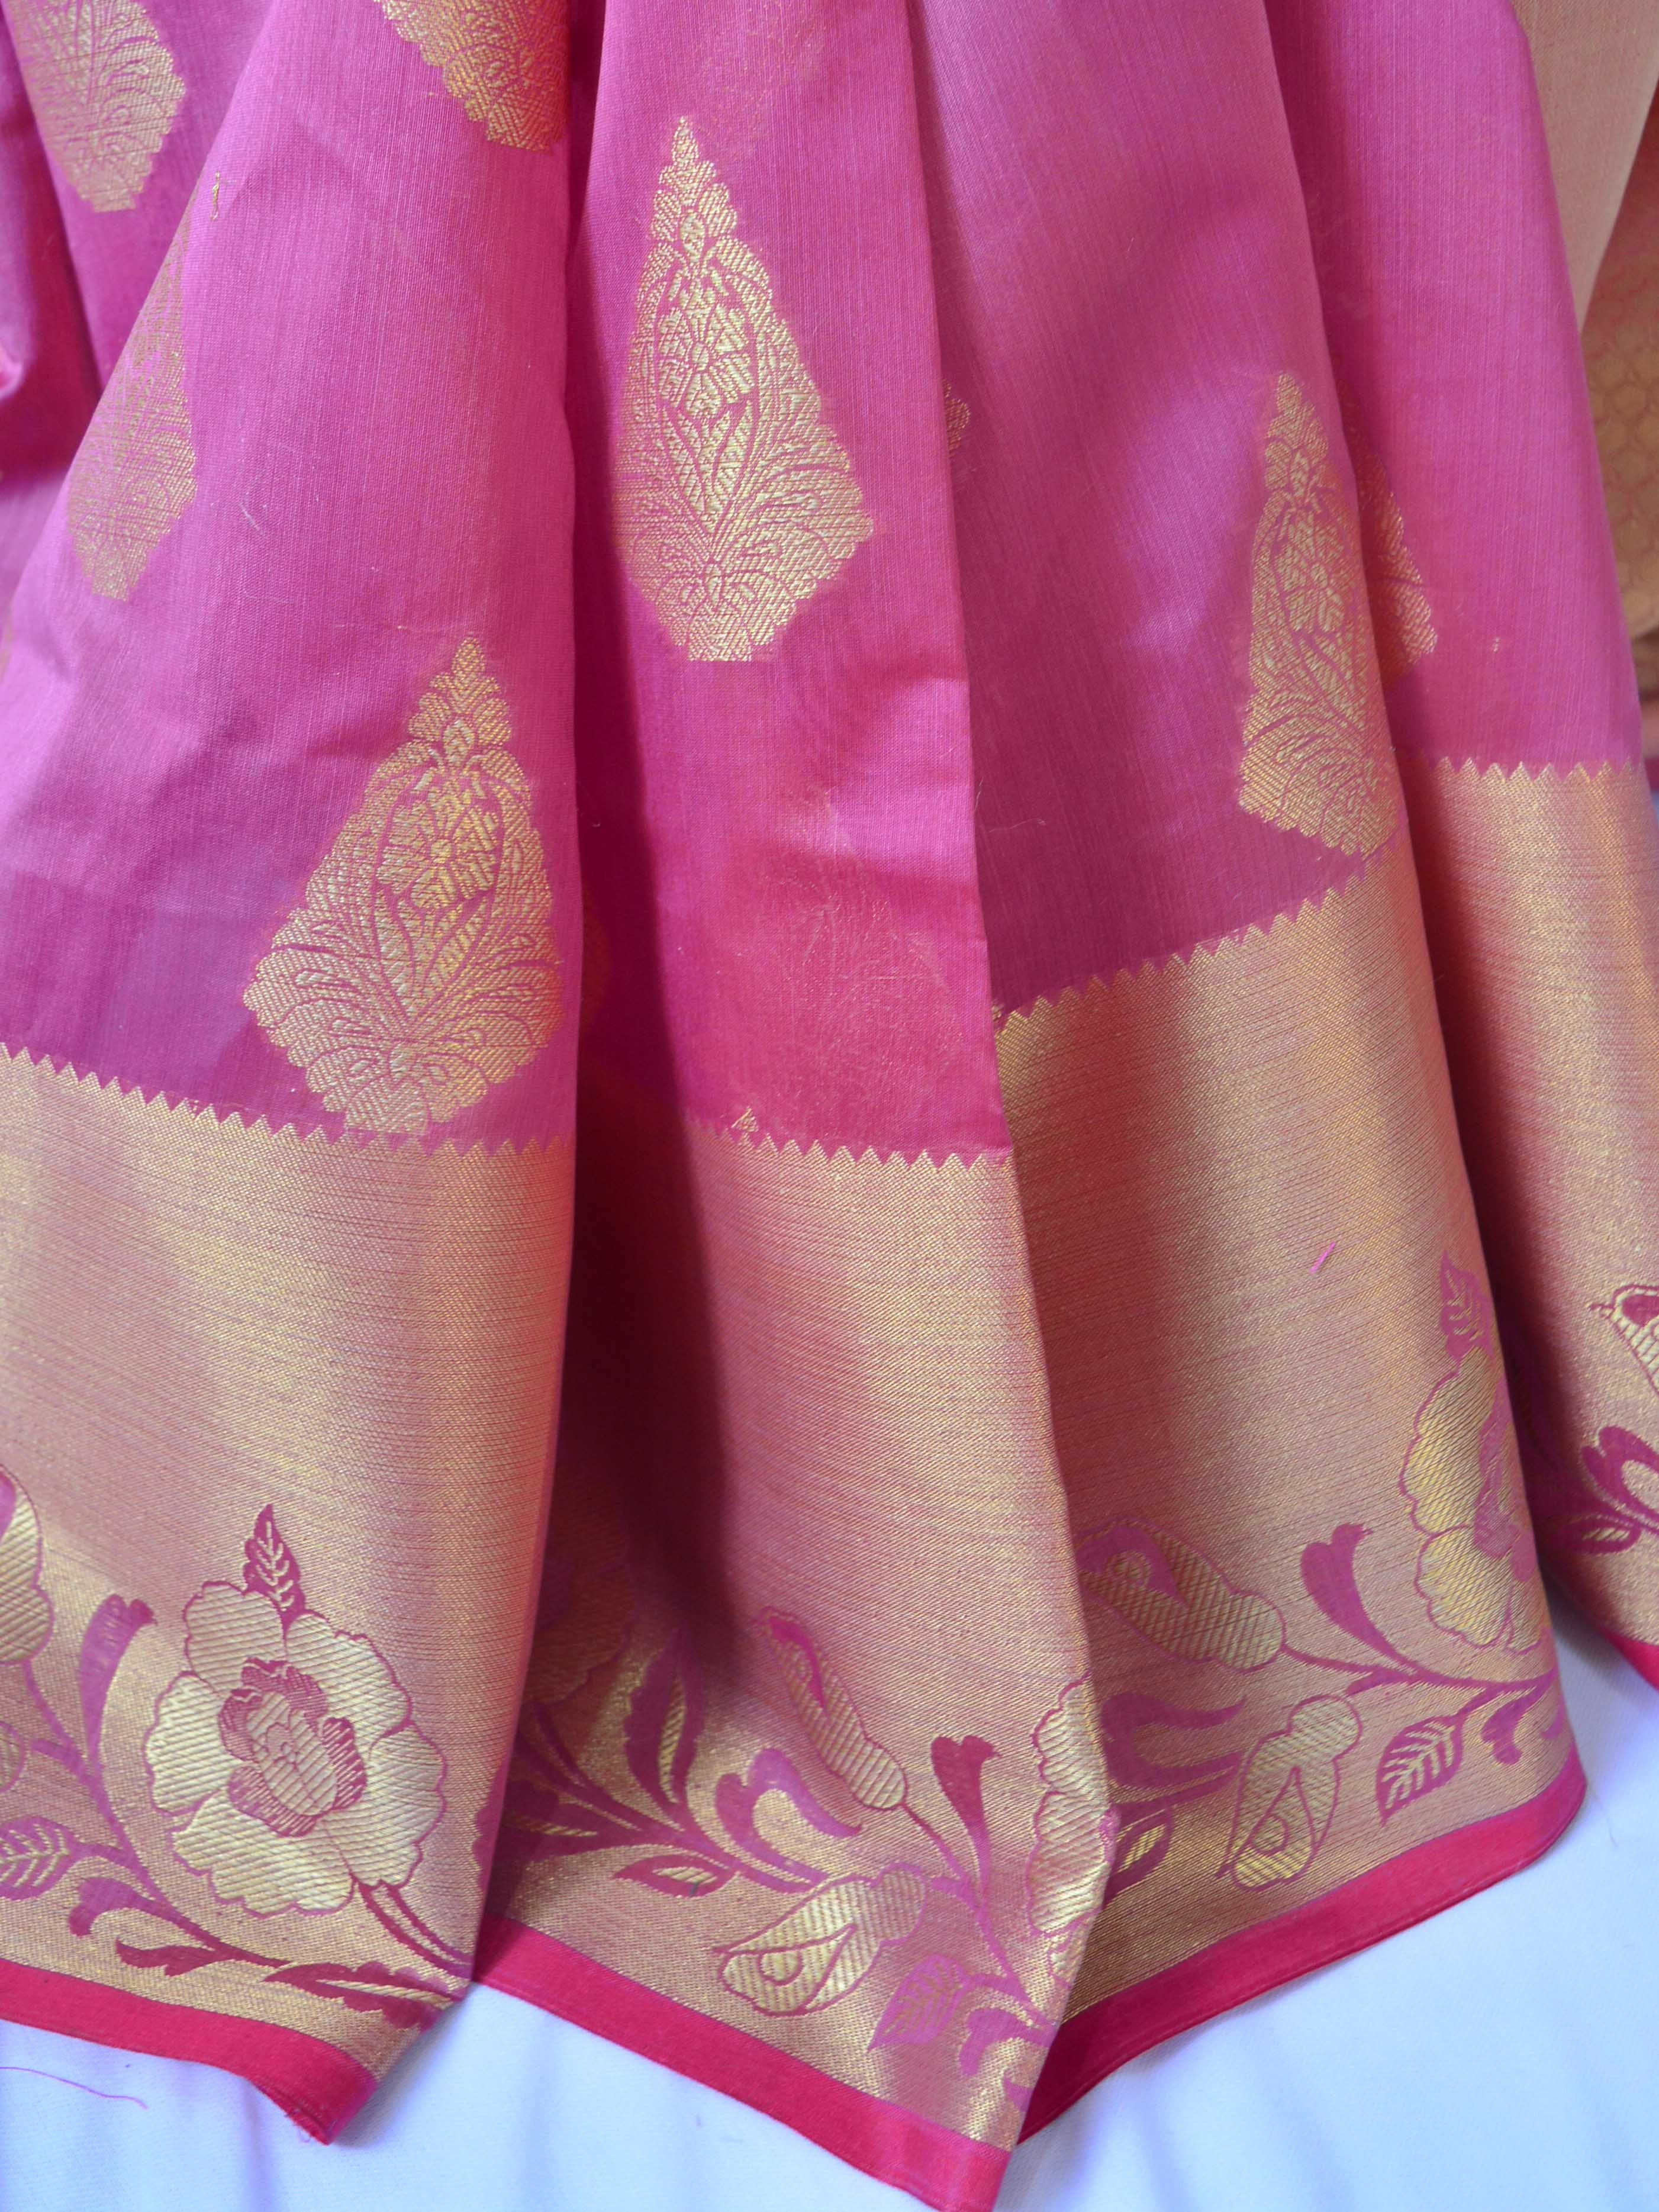 Banarasee/Banarasi Handloom Cotton Silk Mix Broad Border Sari-Onion Pink